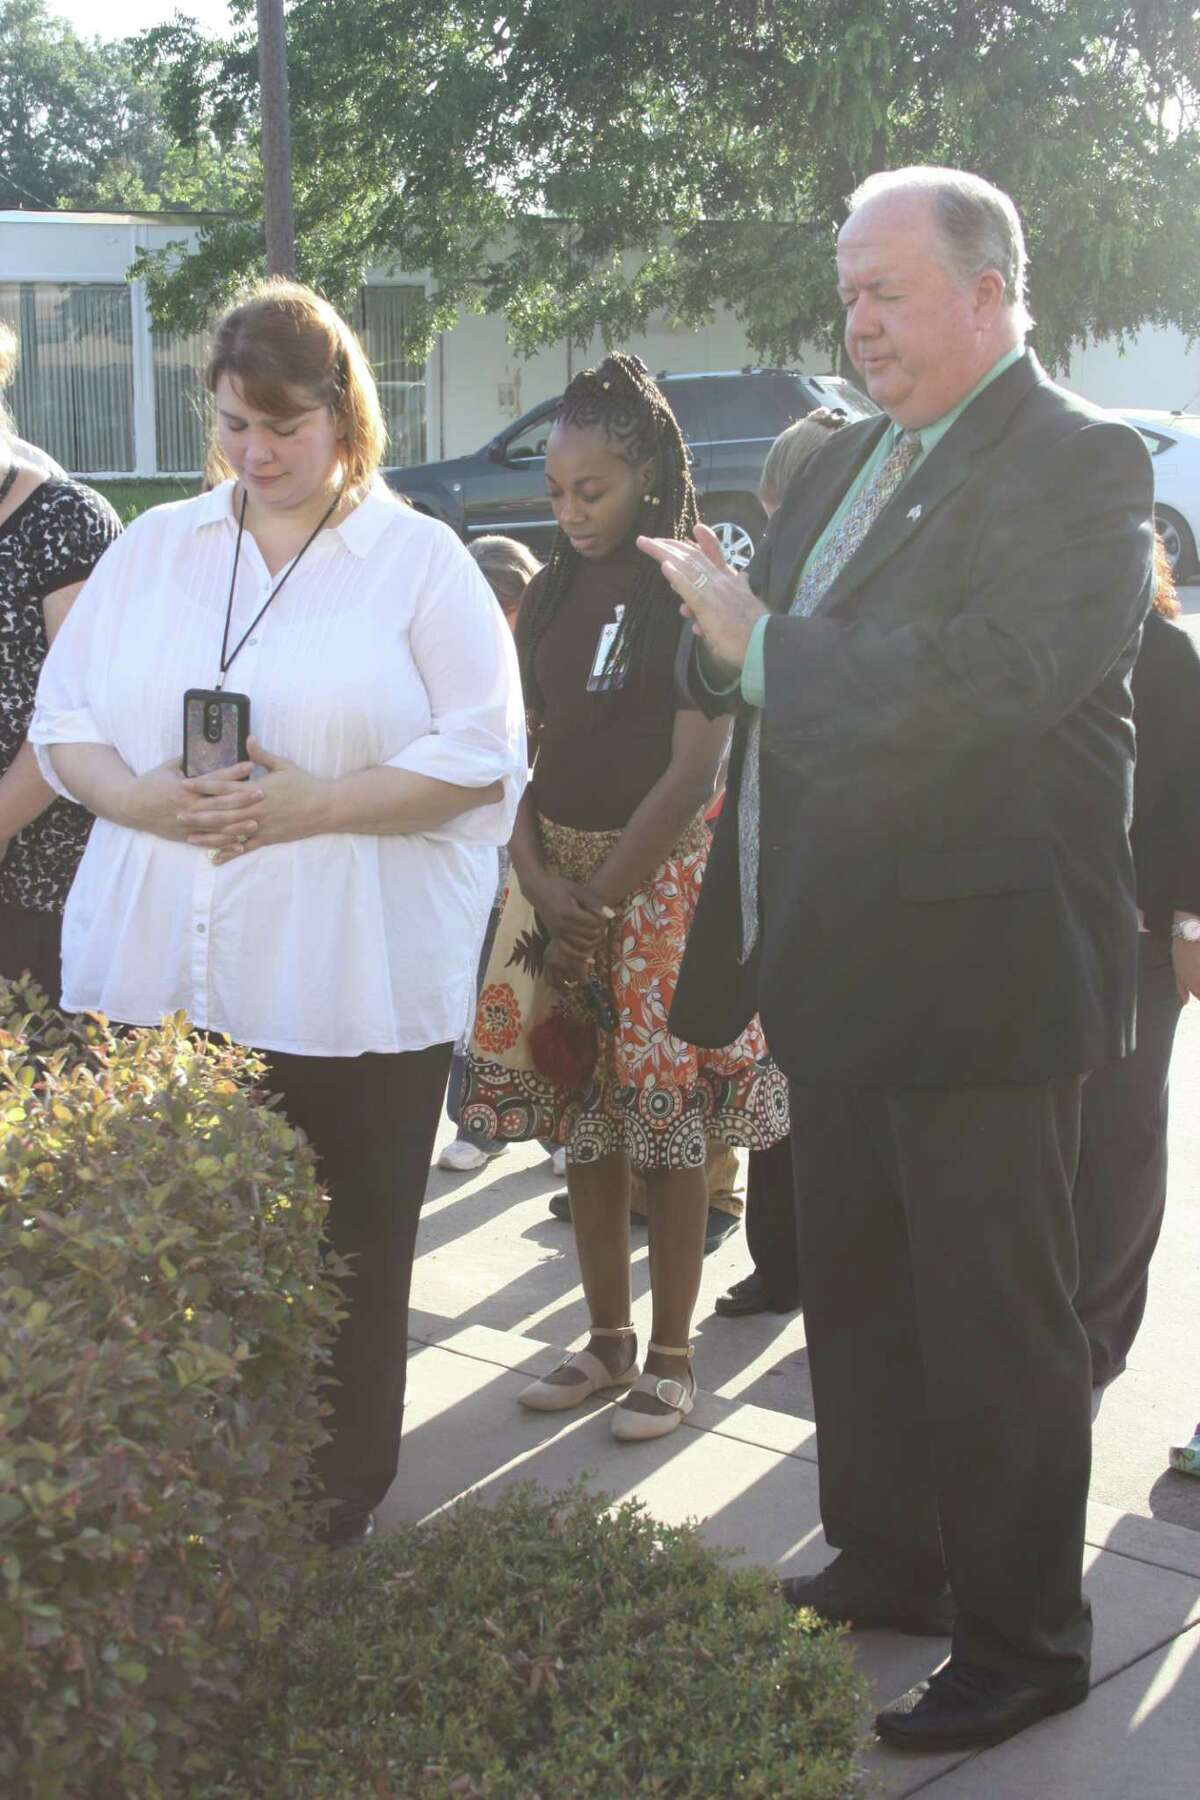 Hospital CEO Don Vickers prays for God's blessings on the Cleveland community and the Texas Rural Hospital, formerly known as Cleveland Regional Medical Center, on Wednesday, July 5. The hospital building located at 300 E. Crockett St. has sat dormant for three years after previous owners closed the hospital abruptly in August 2014.